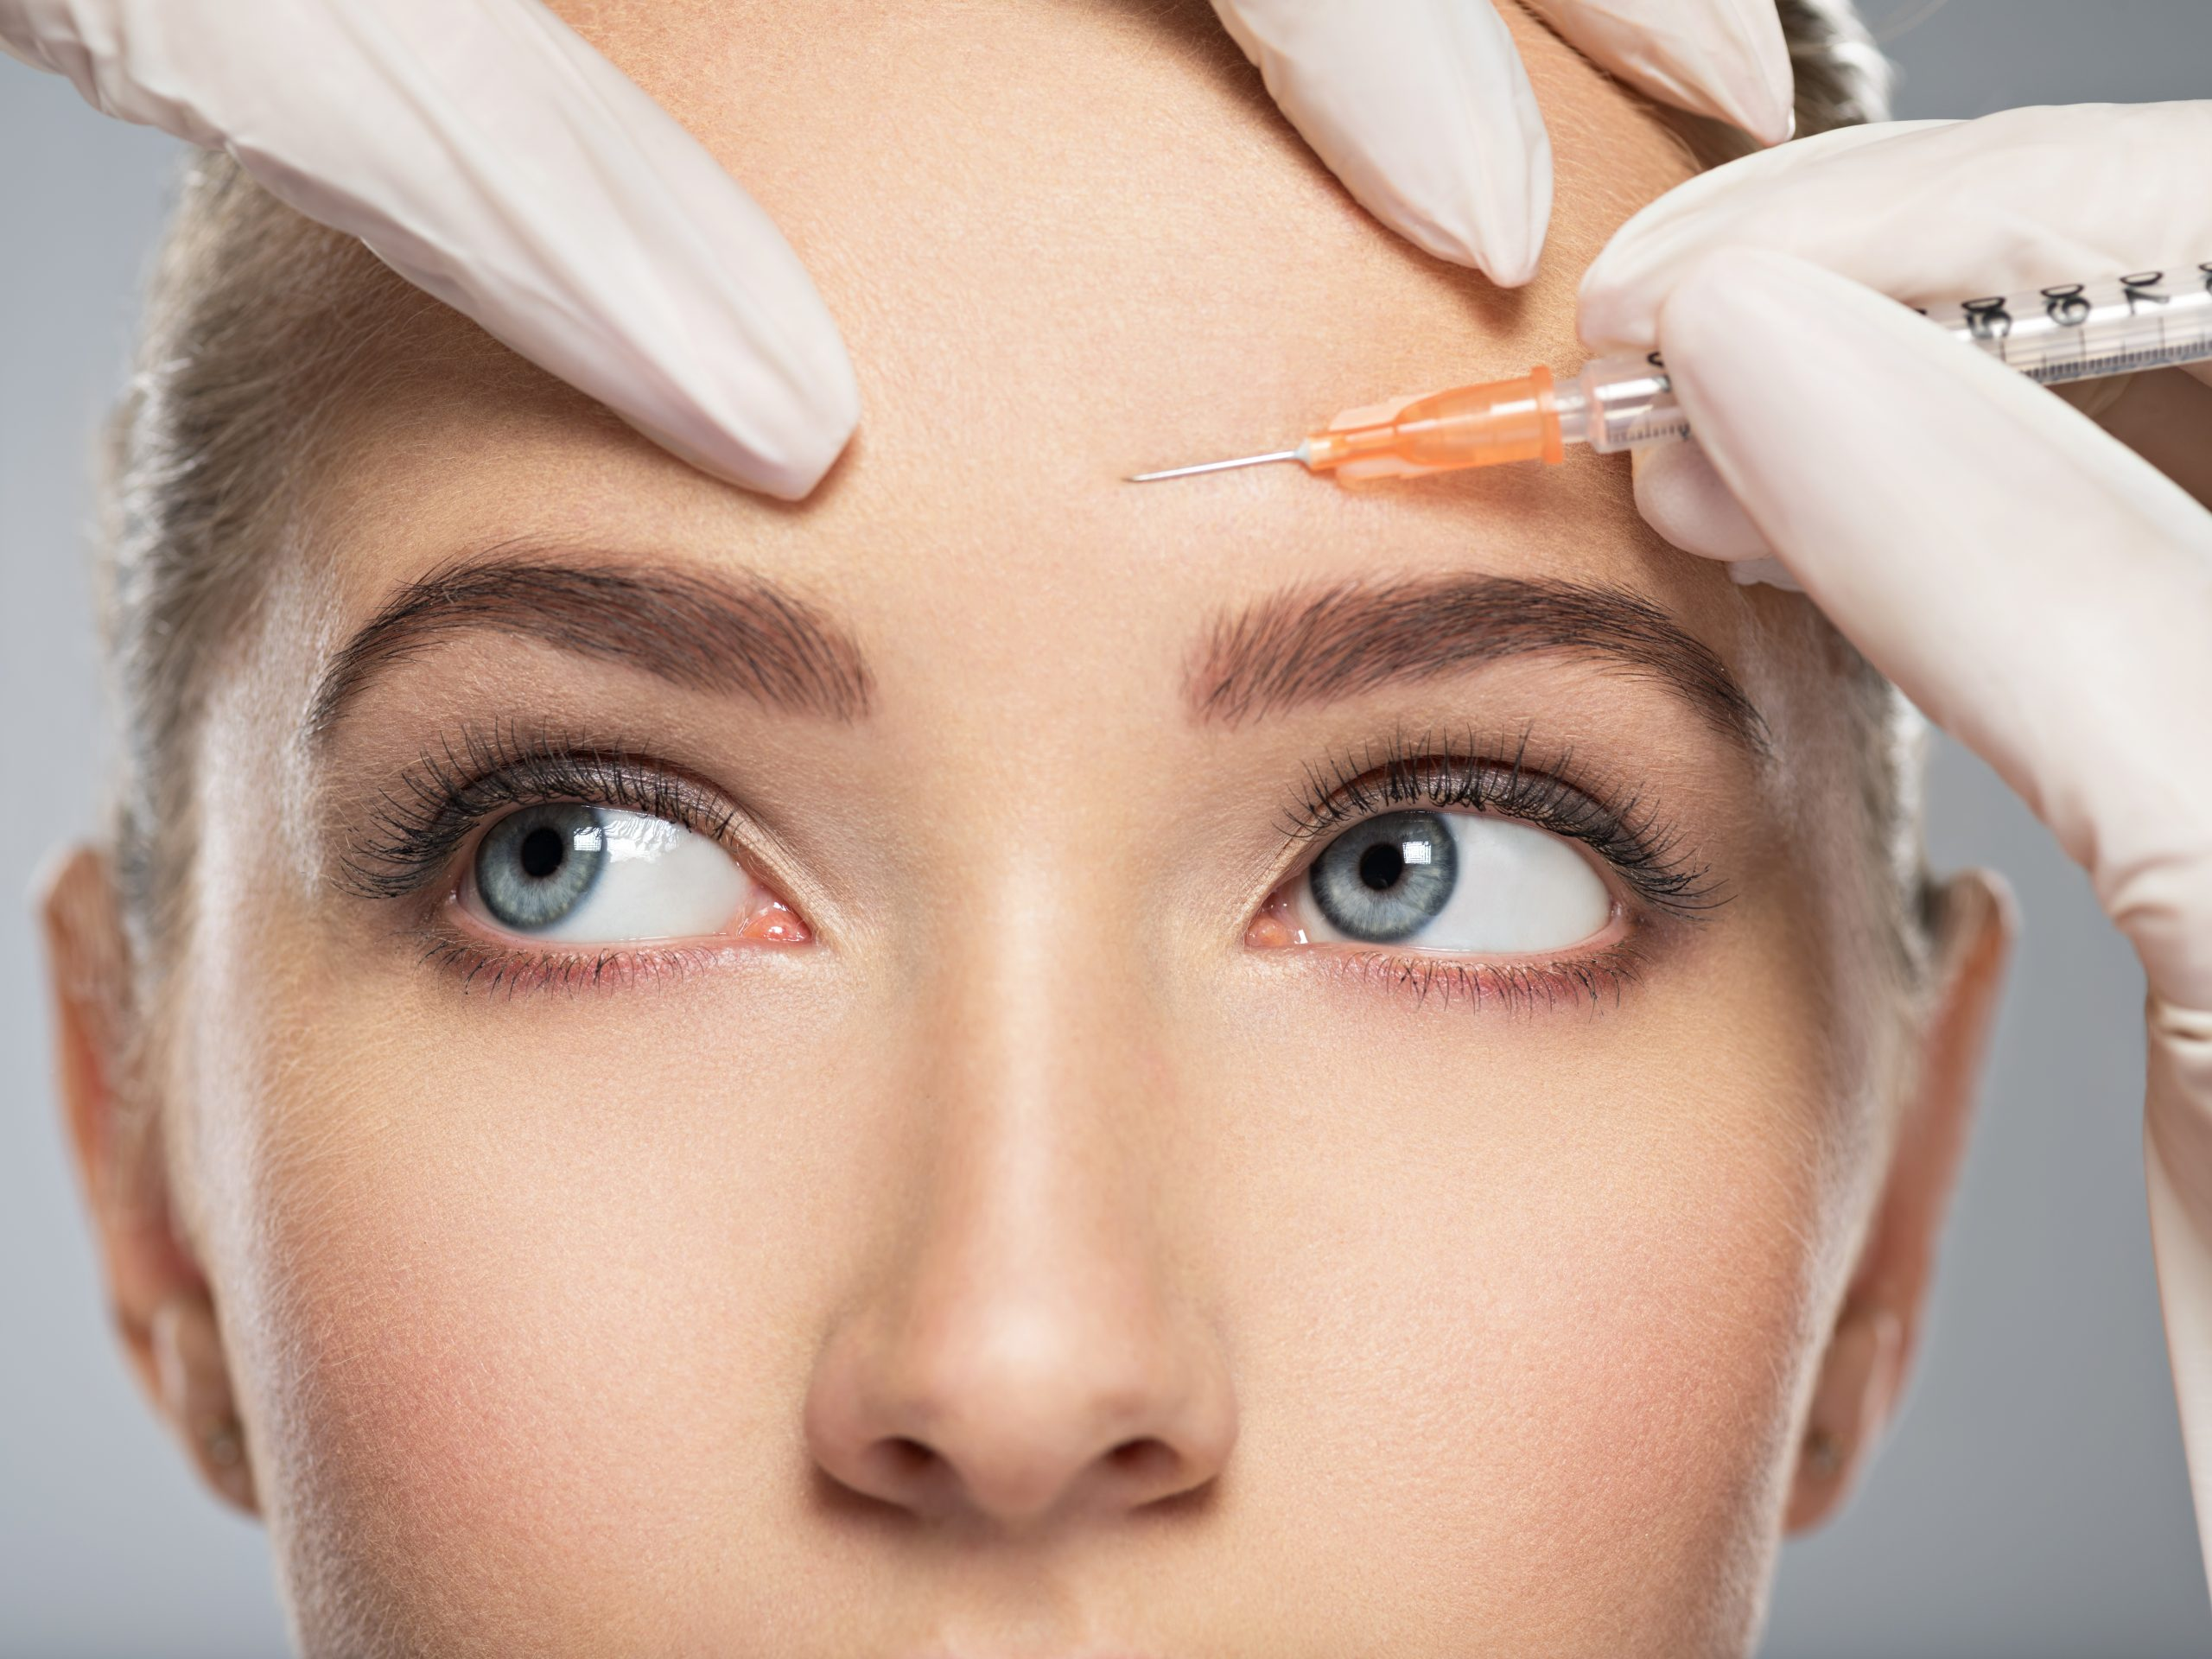 botox anti-ageing fine lines & wrinkles skin cosmetics london